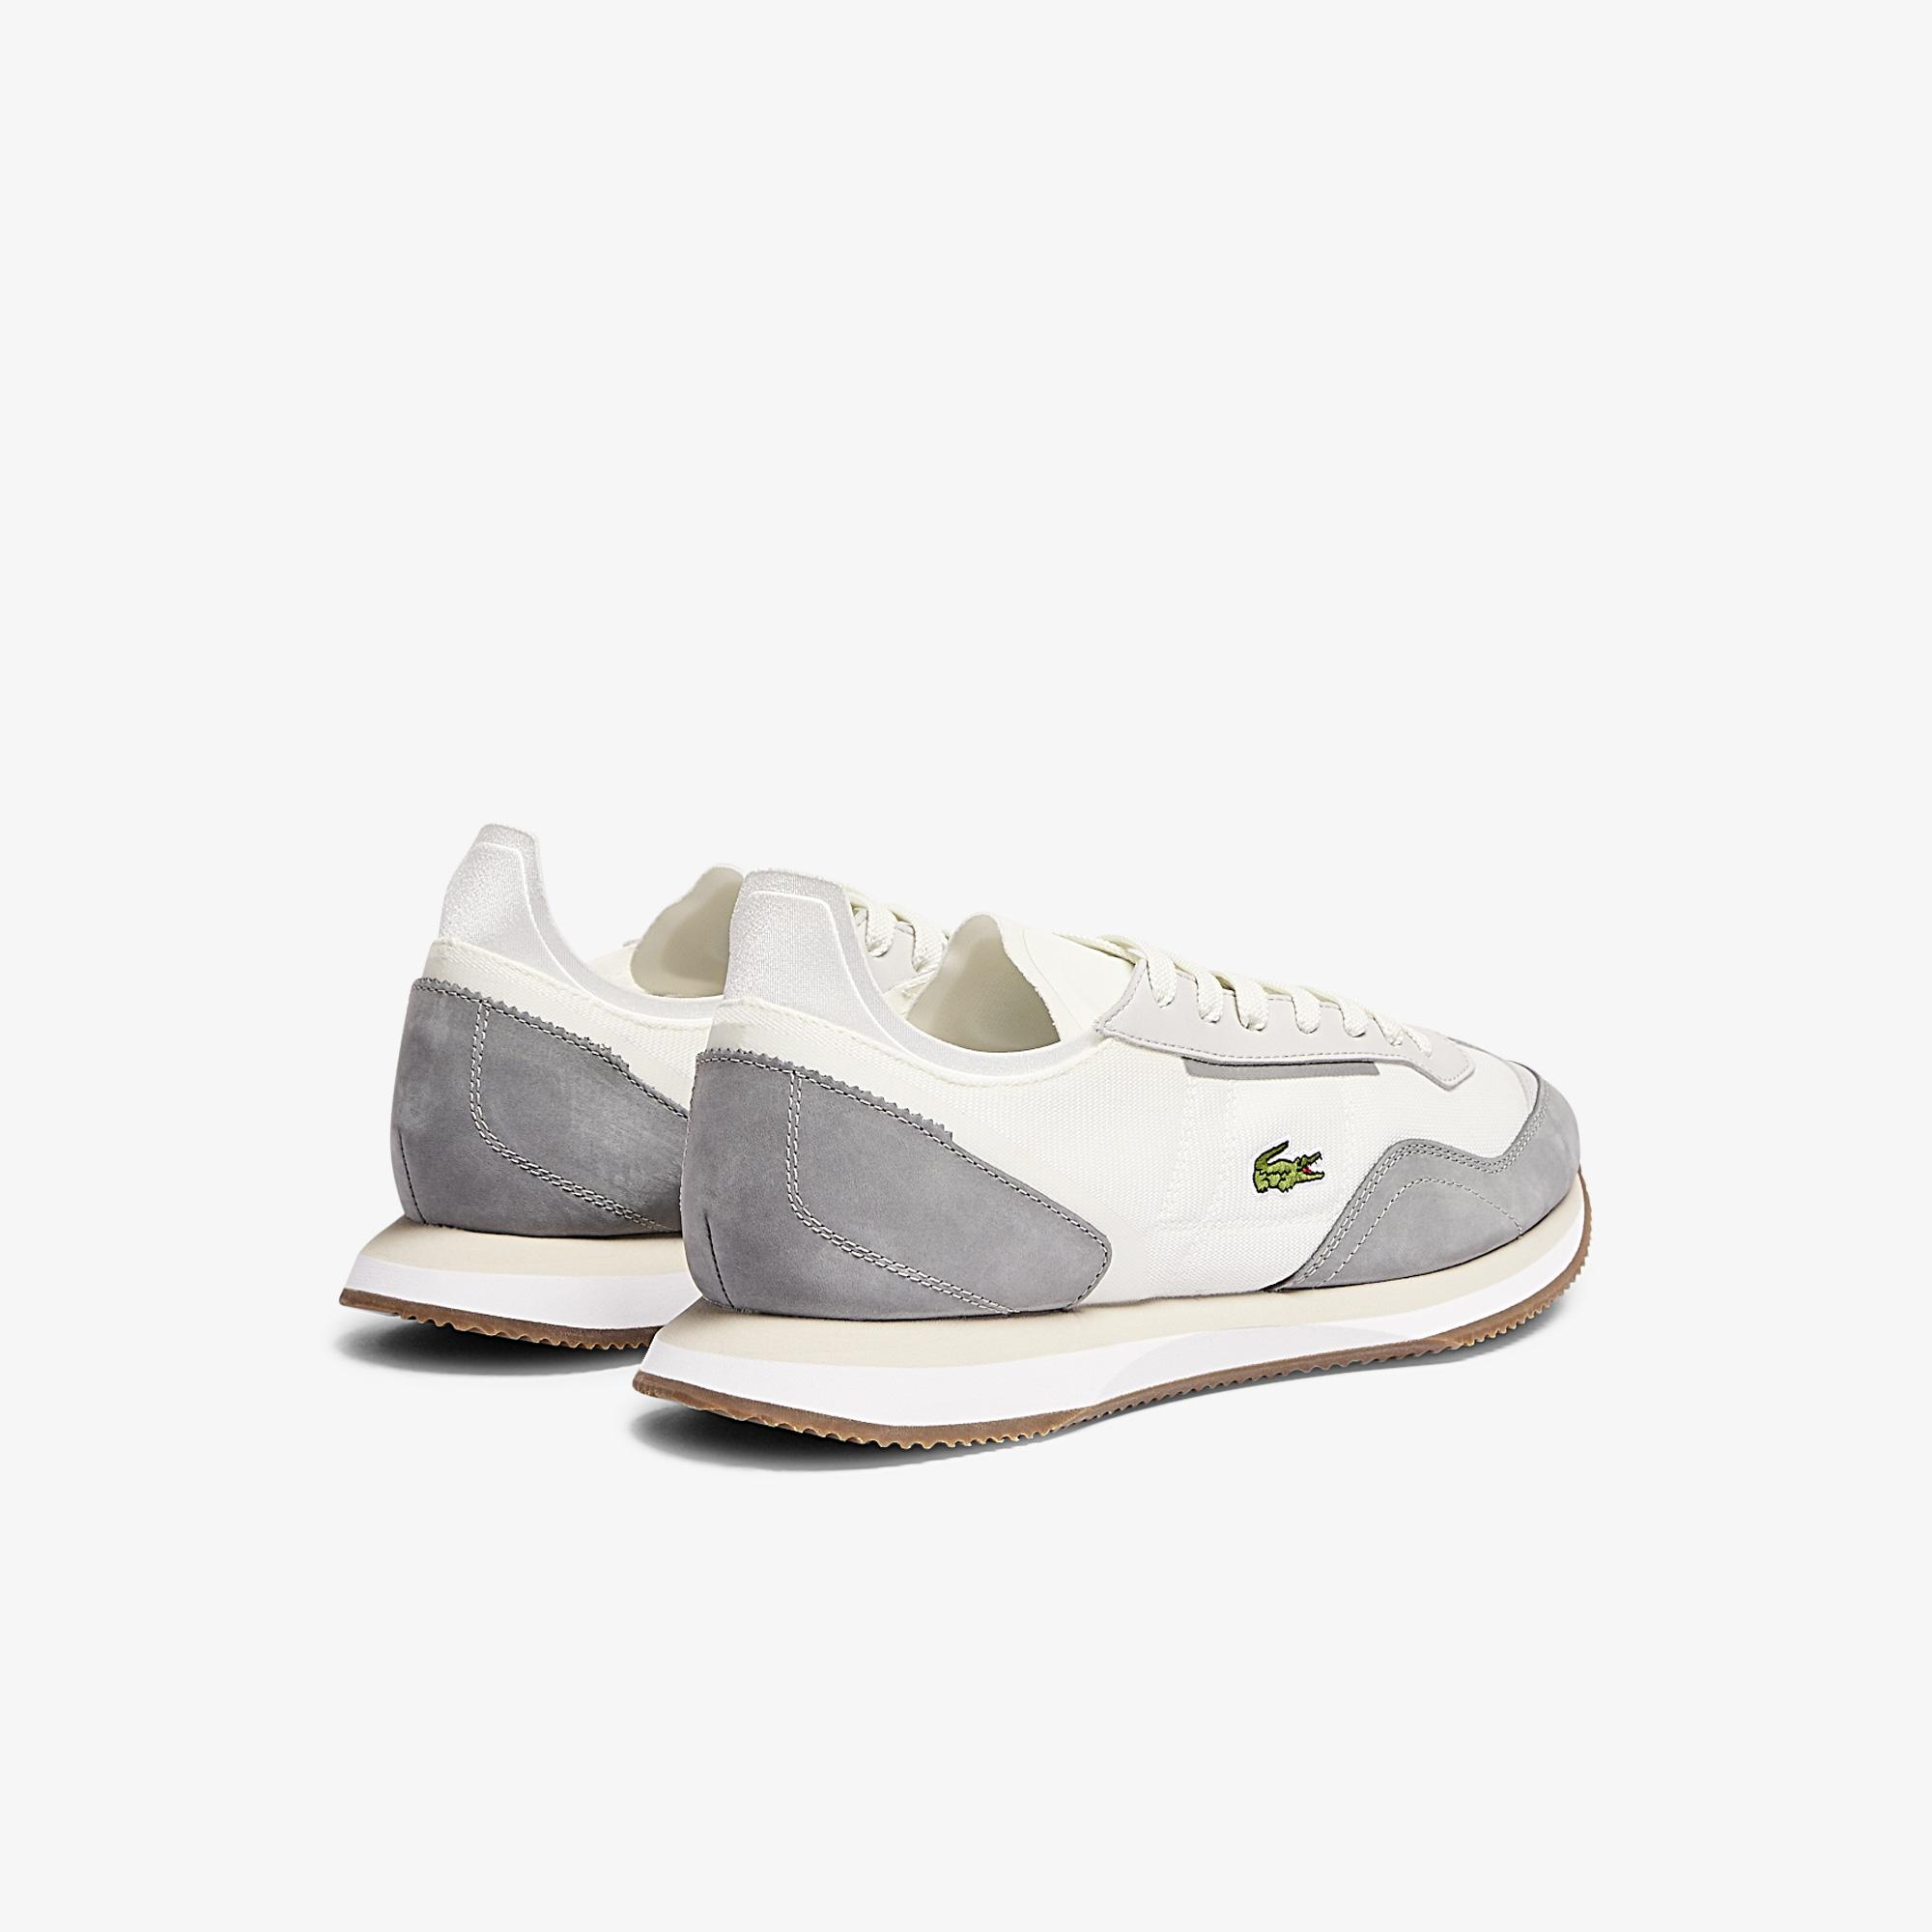 Lacoste Men's Match Break Textile Trainers